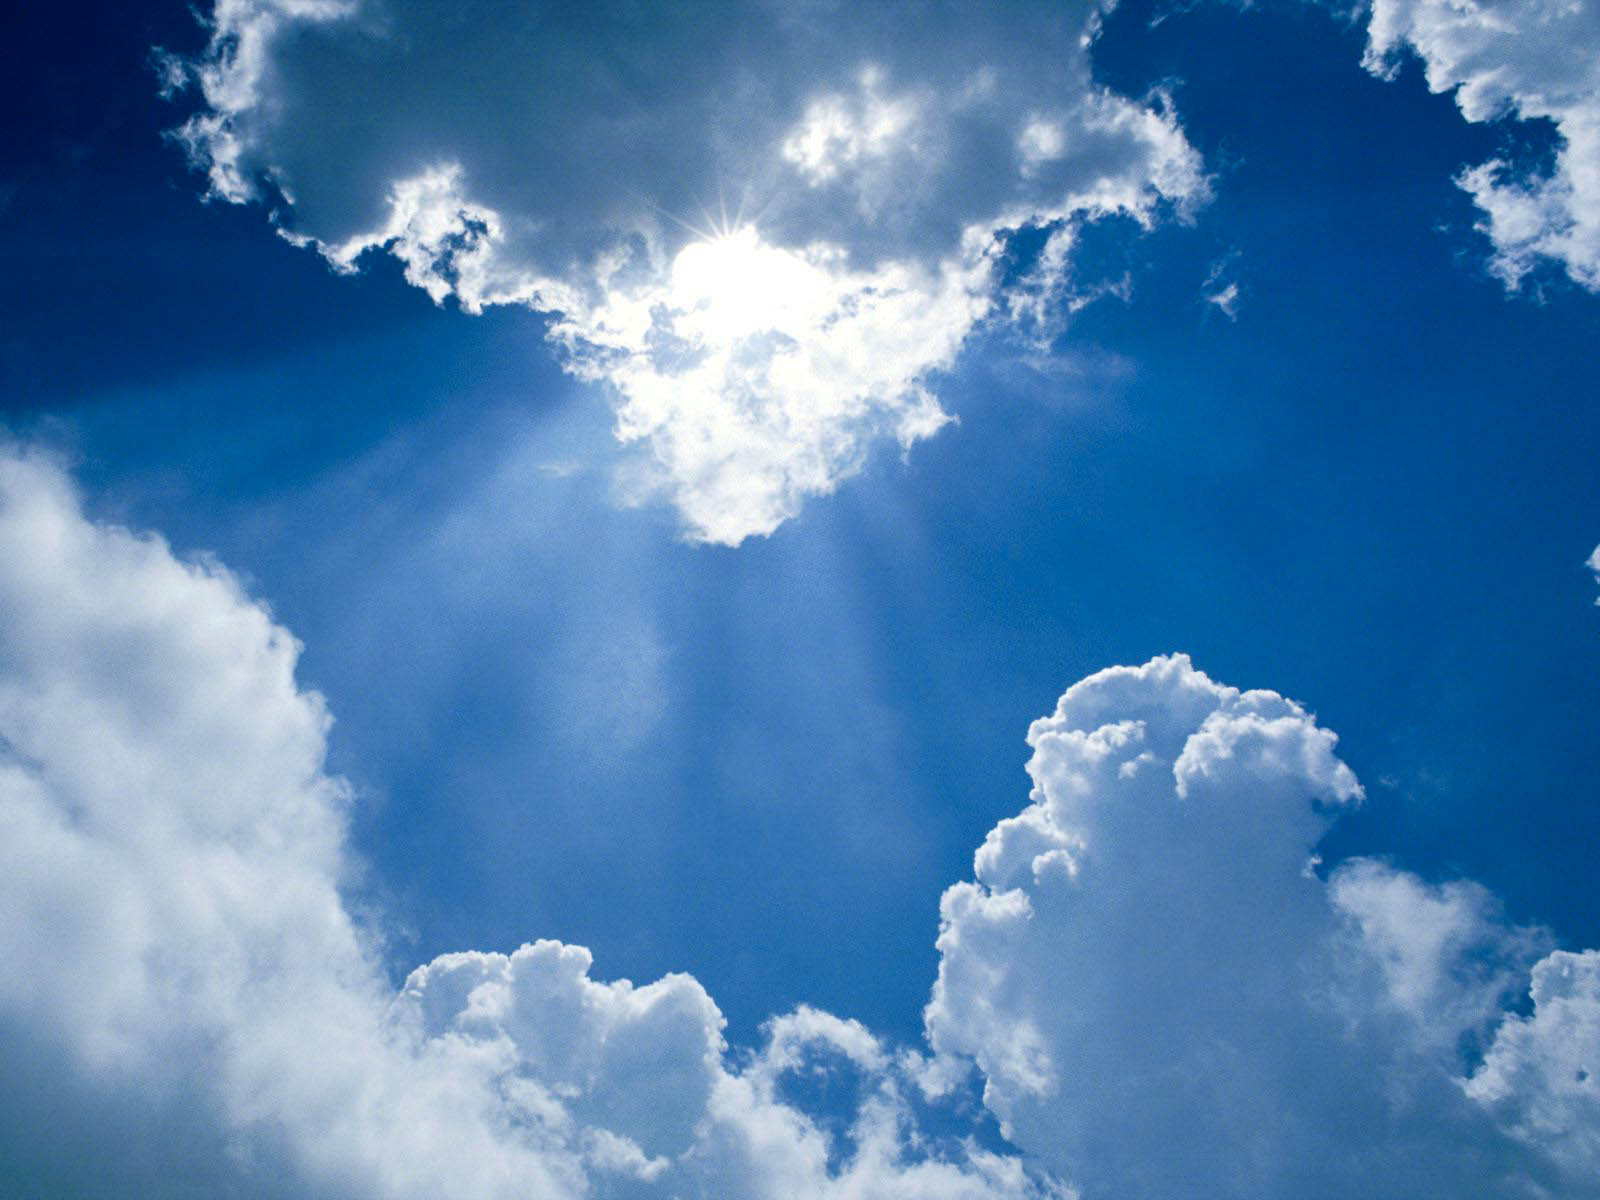 Iphone Cloud Wallpaper Sky High Resolutin Hd Wallpapers And Backgrounds All Hd